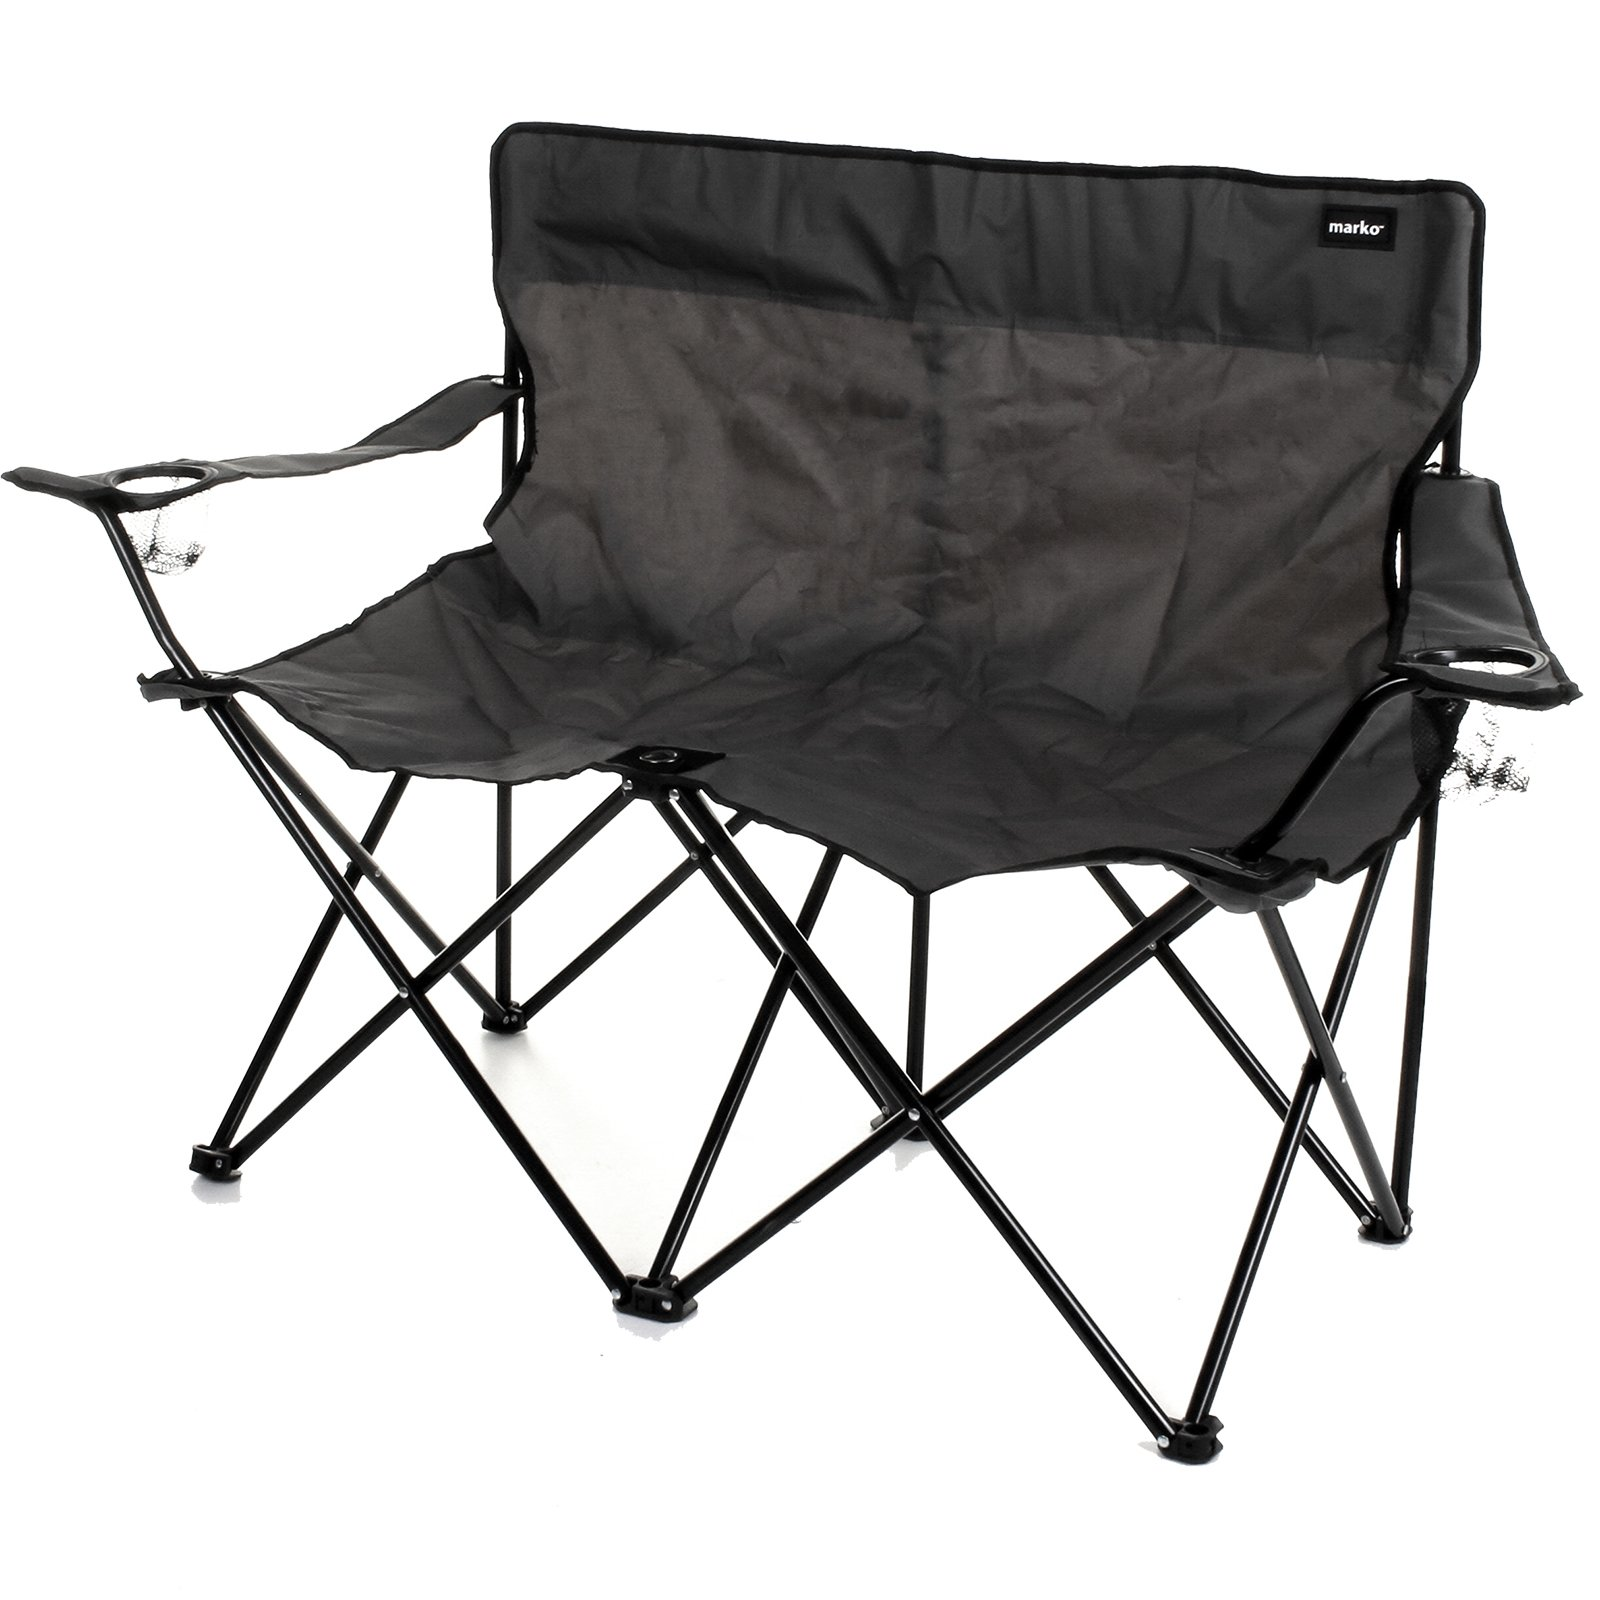 Marko Outdoor Double Camping Chair